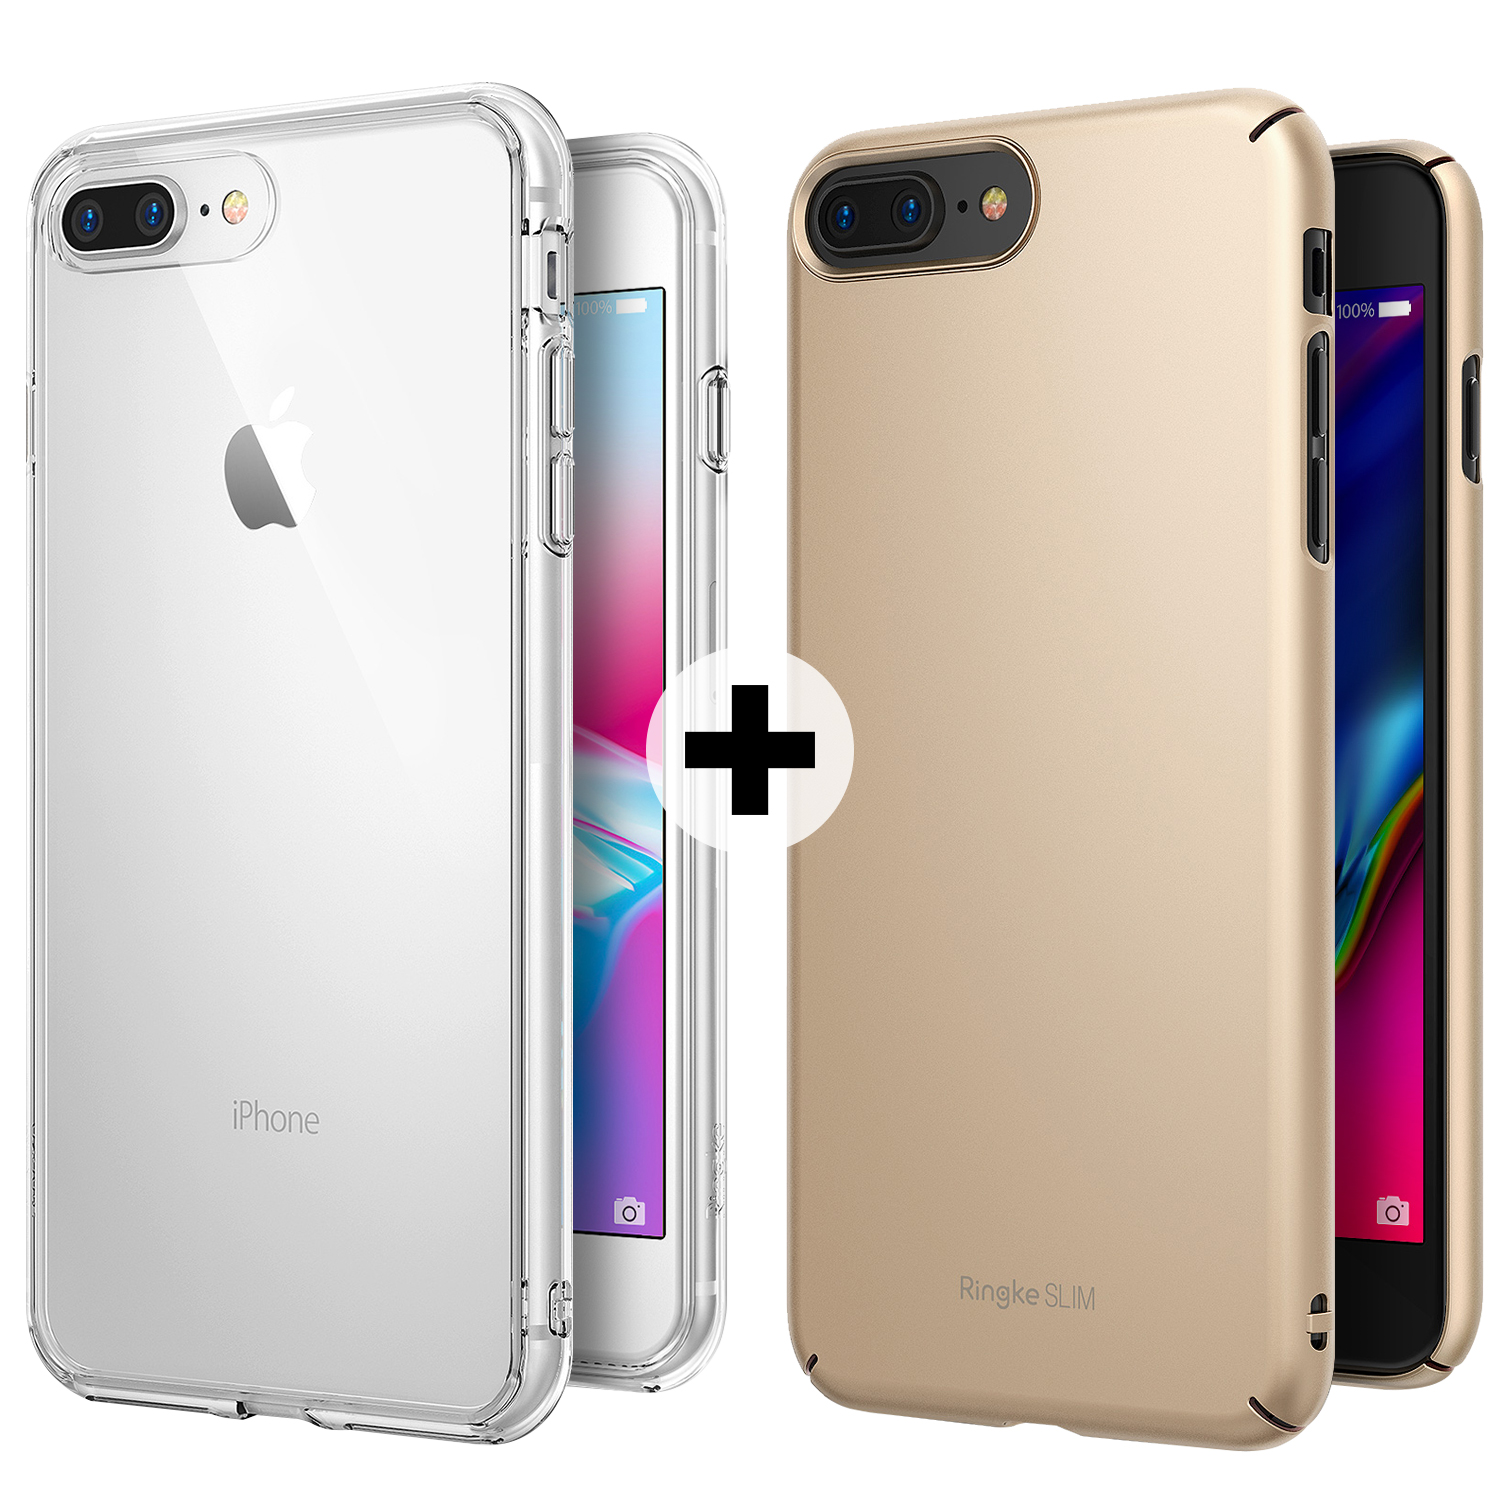 Apple Iphone 7 Plus 8 Phone Case Ringke Fusion Crystal Rearth Slim Royal Gold Clear Transparent Pc Back Tpu Bumper Drop Protection Scratch Resistant Protective Cover